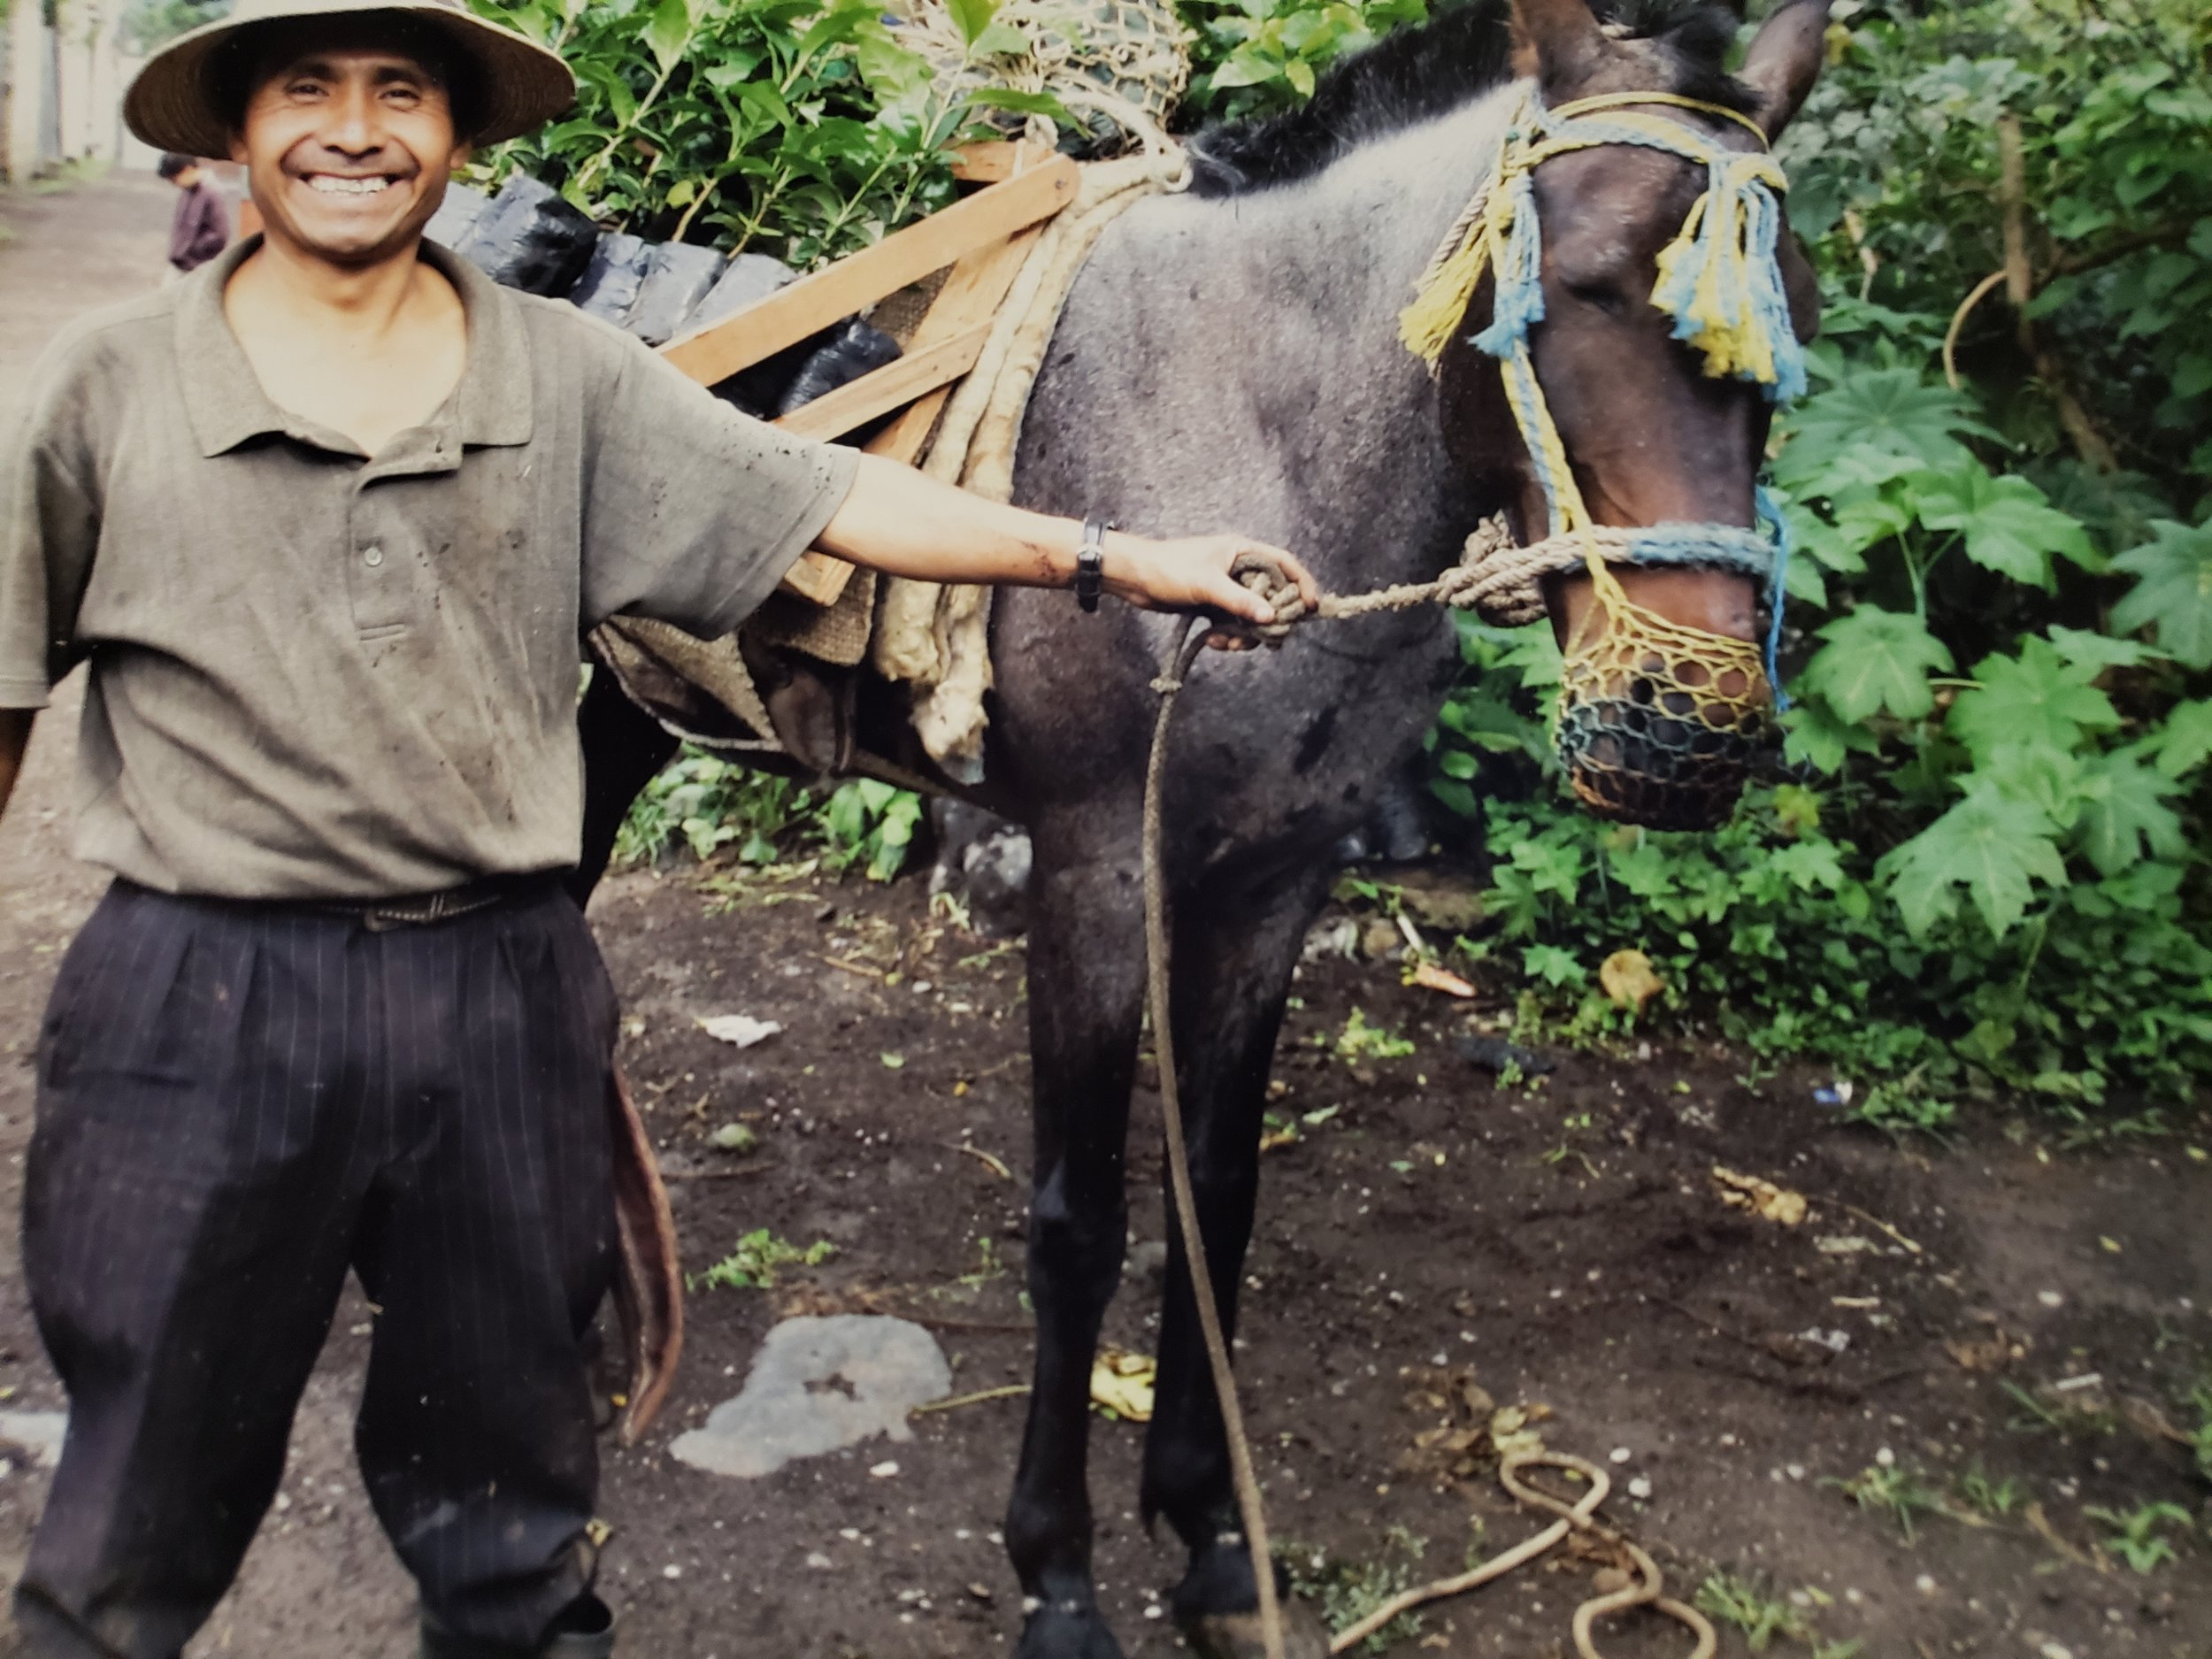 Alberto [above] is the coffee farmer we source our coffee from!